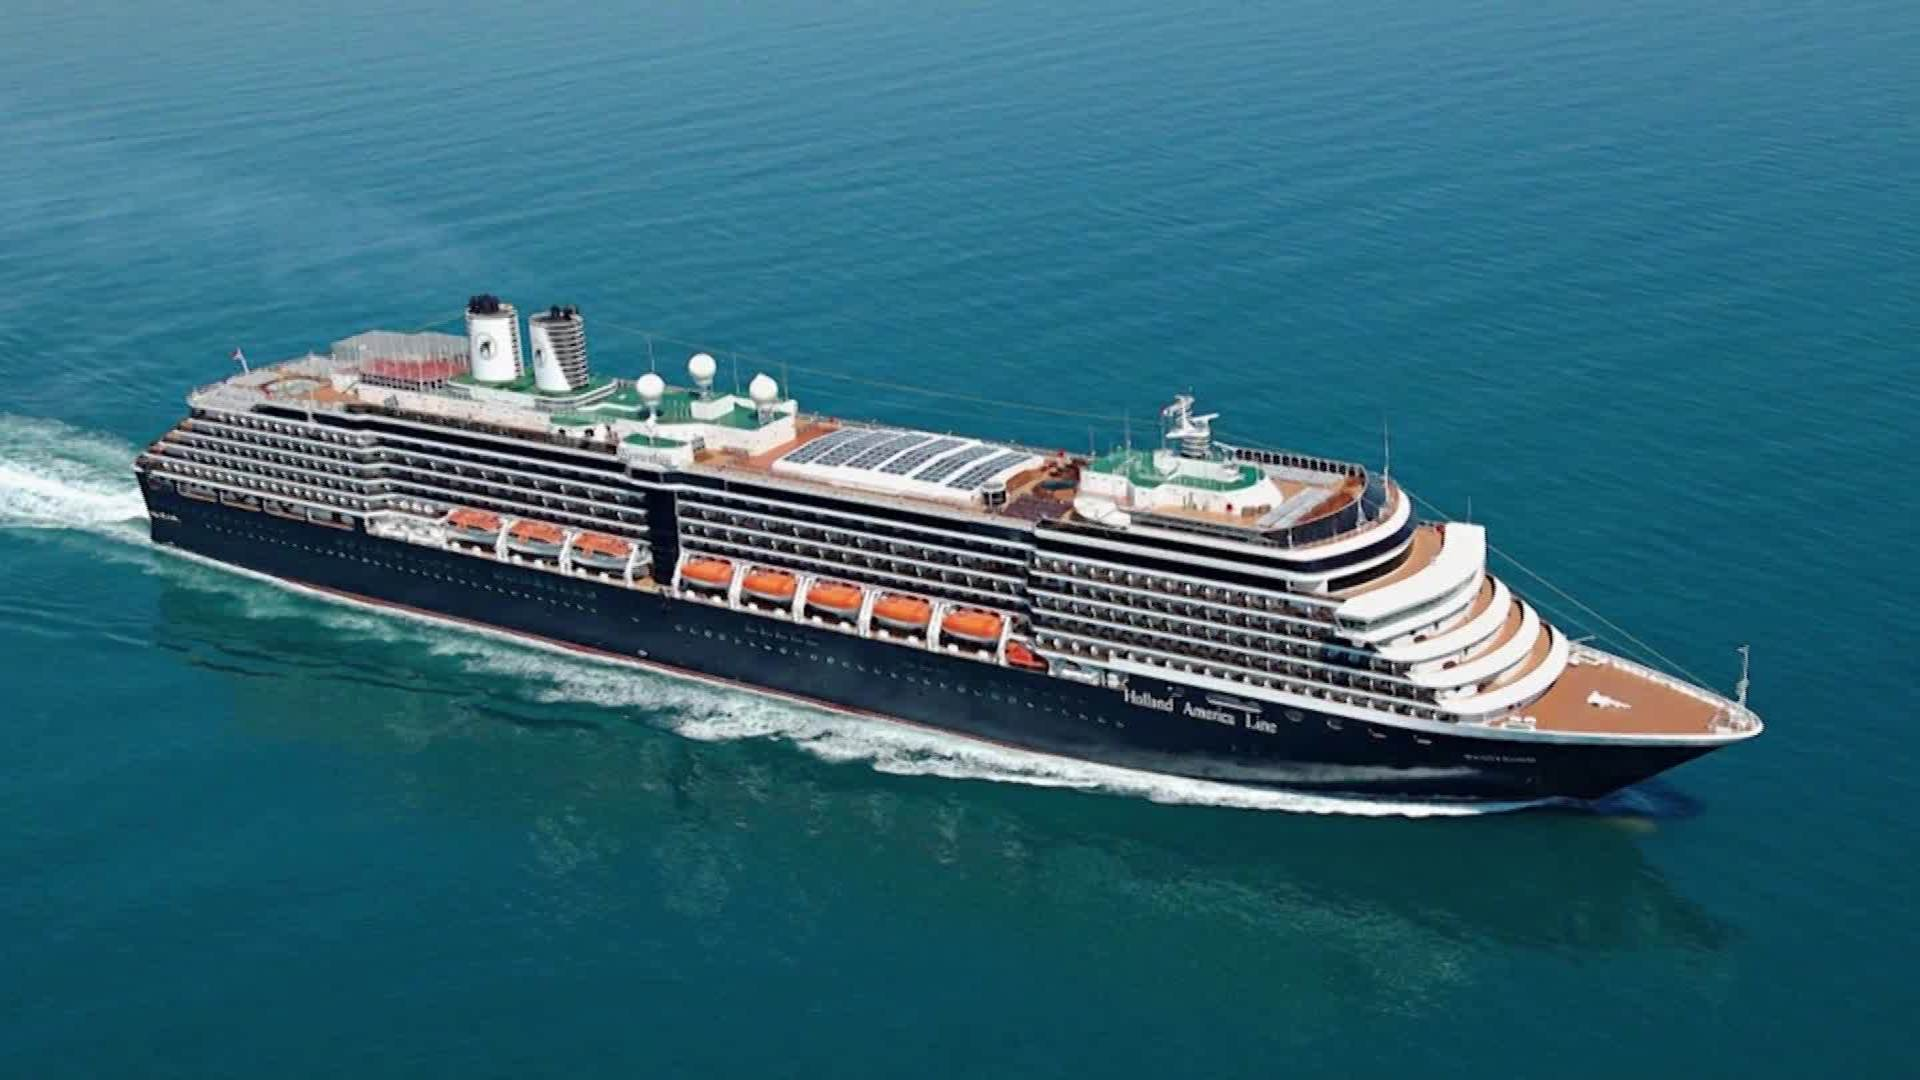 There are 1,455 guests and 802 crew onboard the Westerdam.